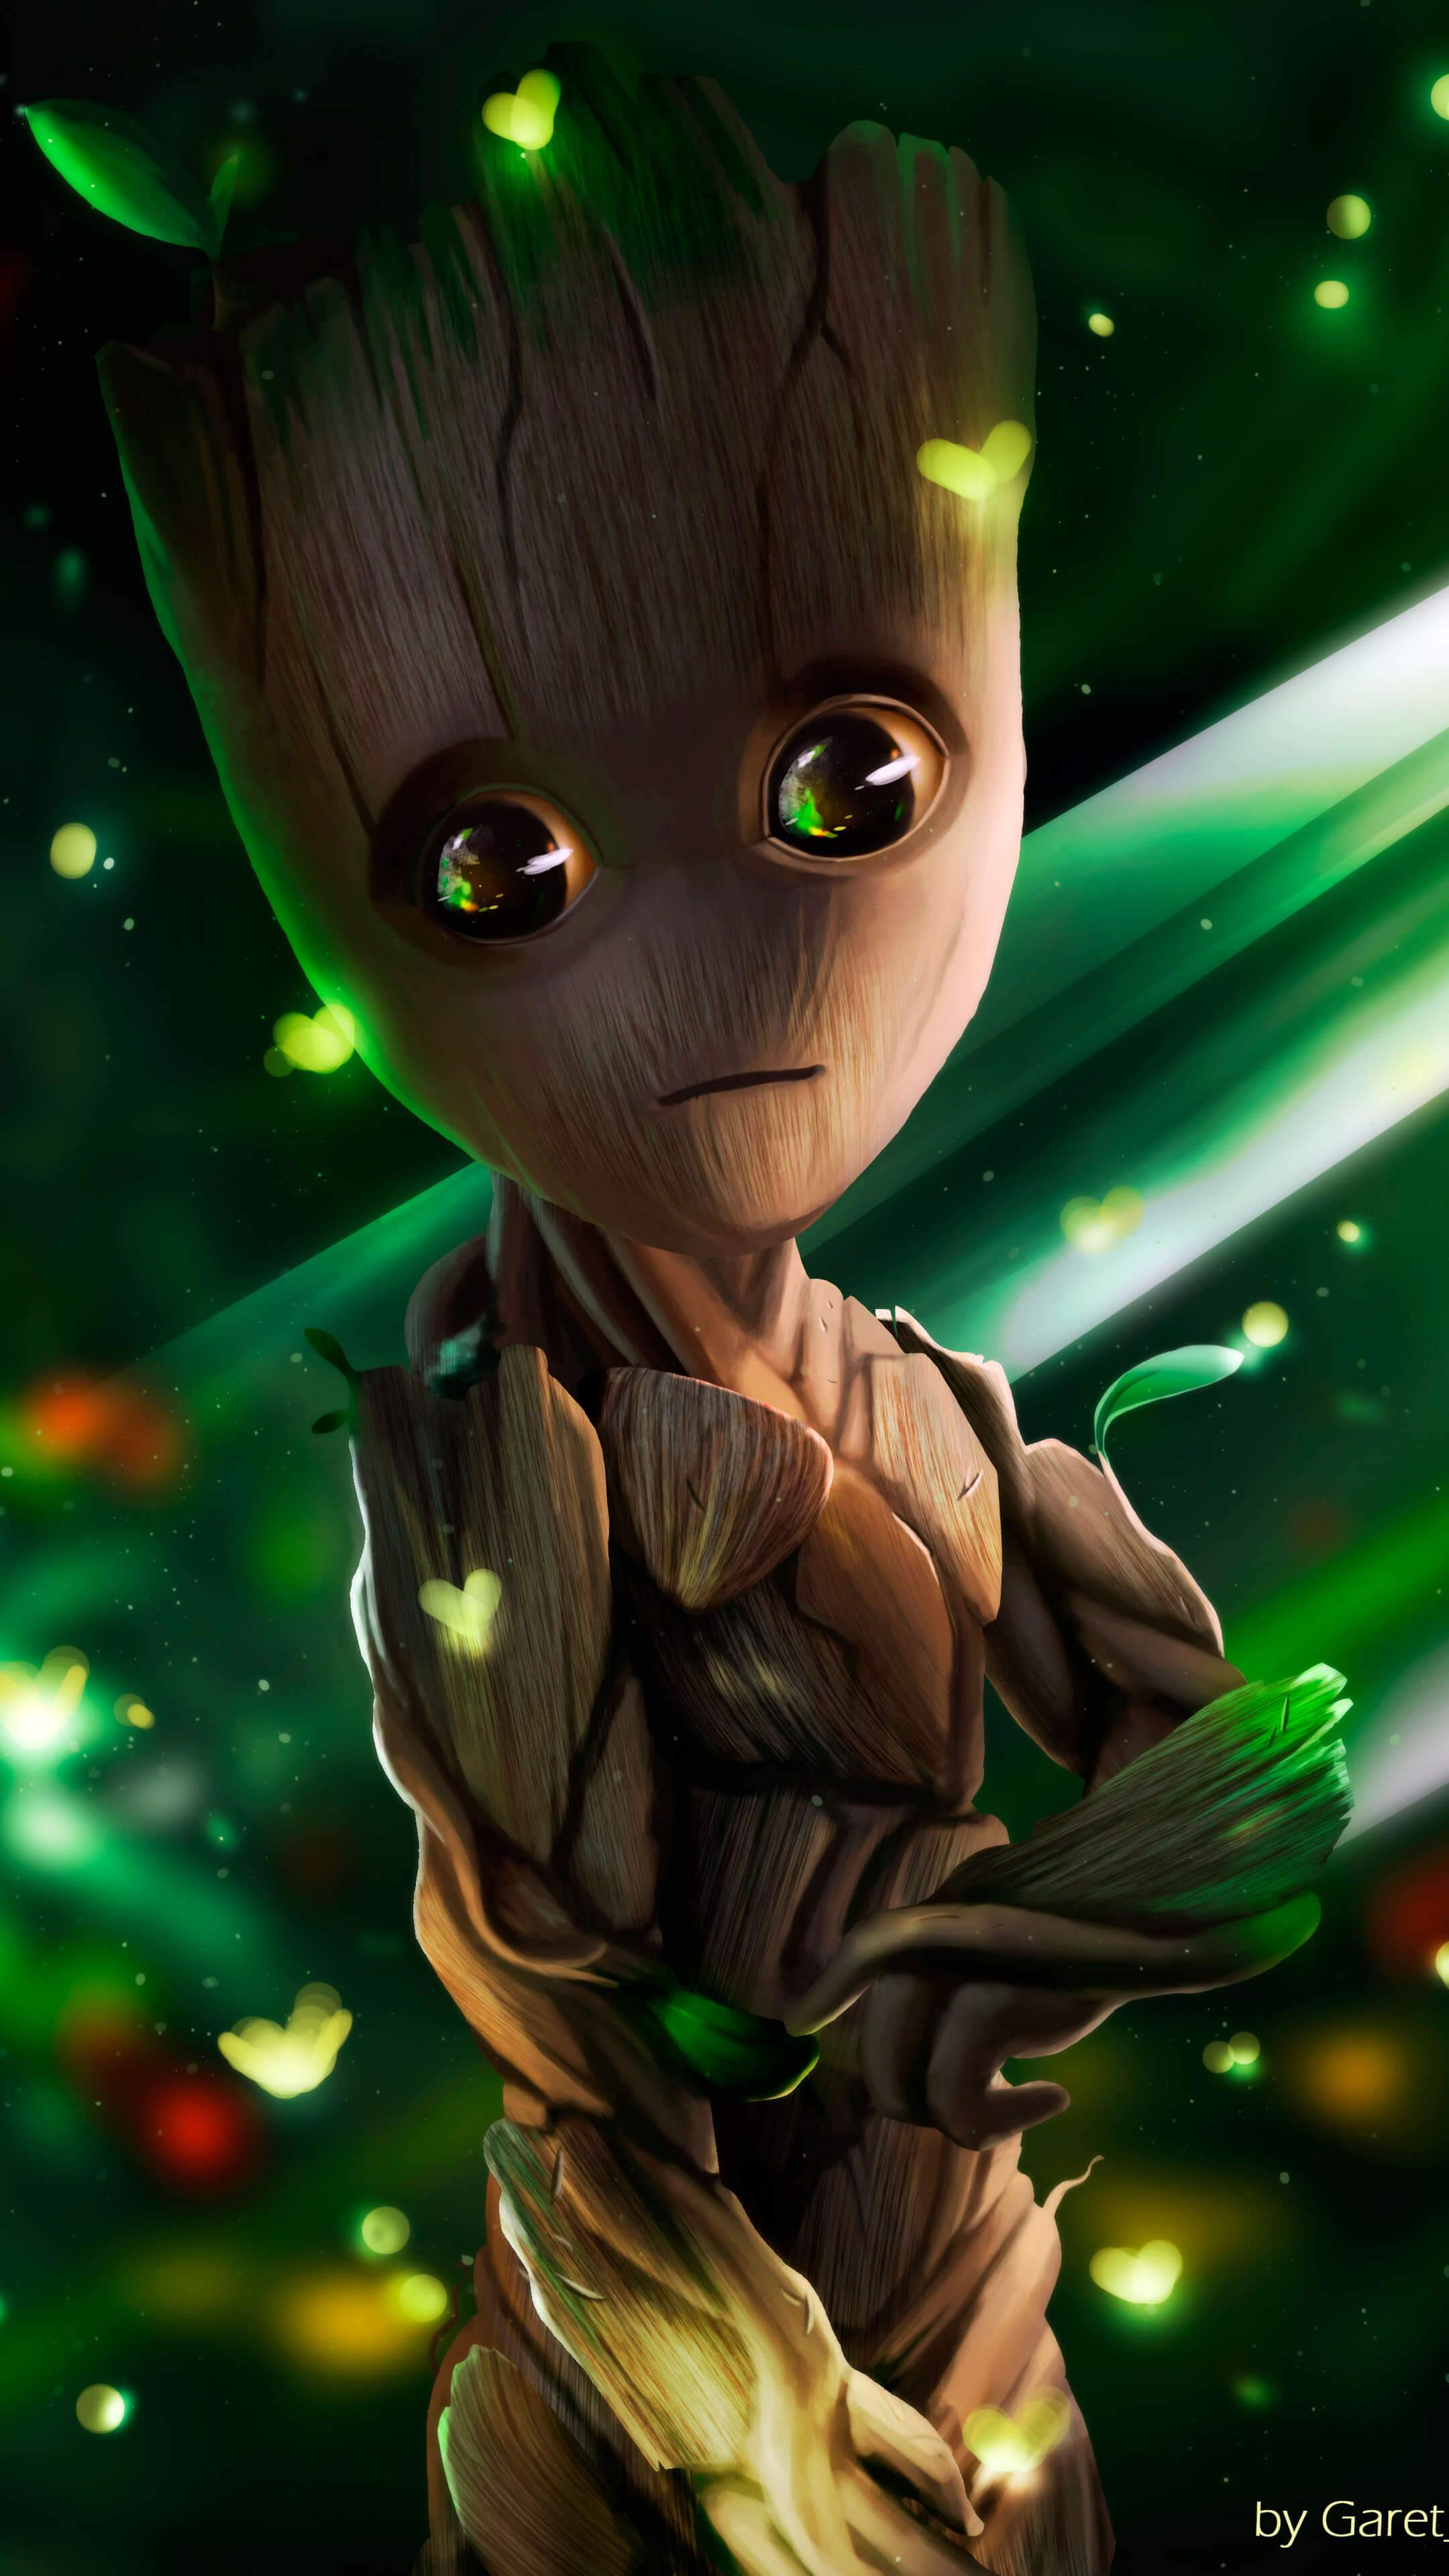 Baby Pics Cute Wallpapers Baby Groot Iphone Wallpaper Iphone Wallpapers